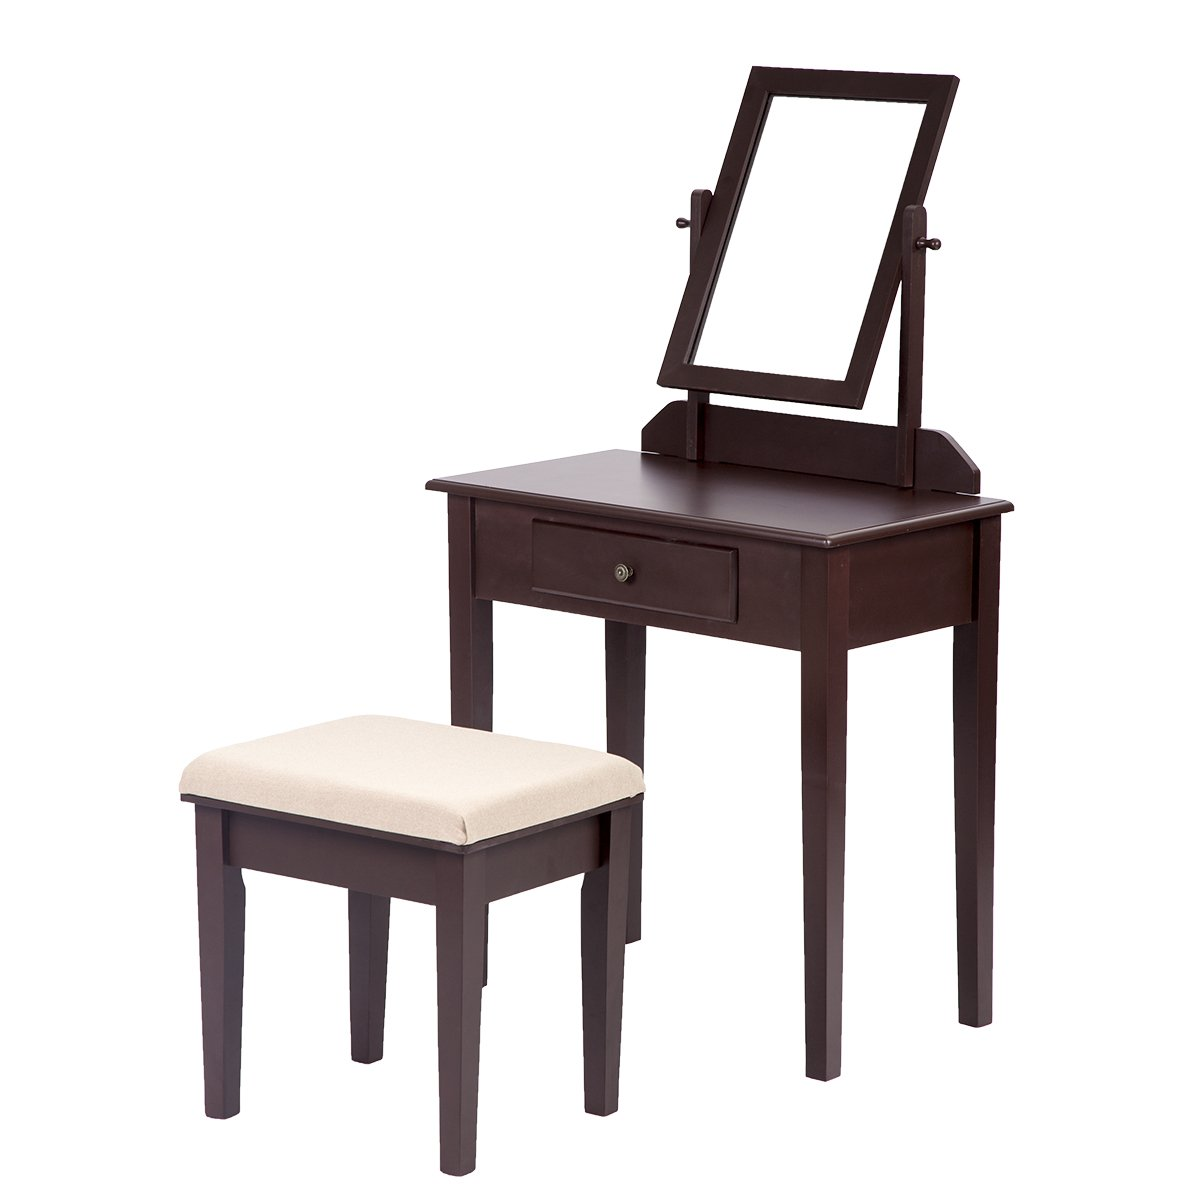 BestMassage Makeup Vanity Set Table with Drawer, Fashional Stool and Mirror